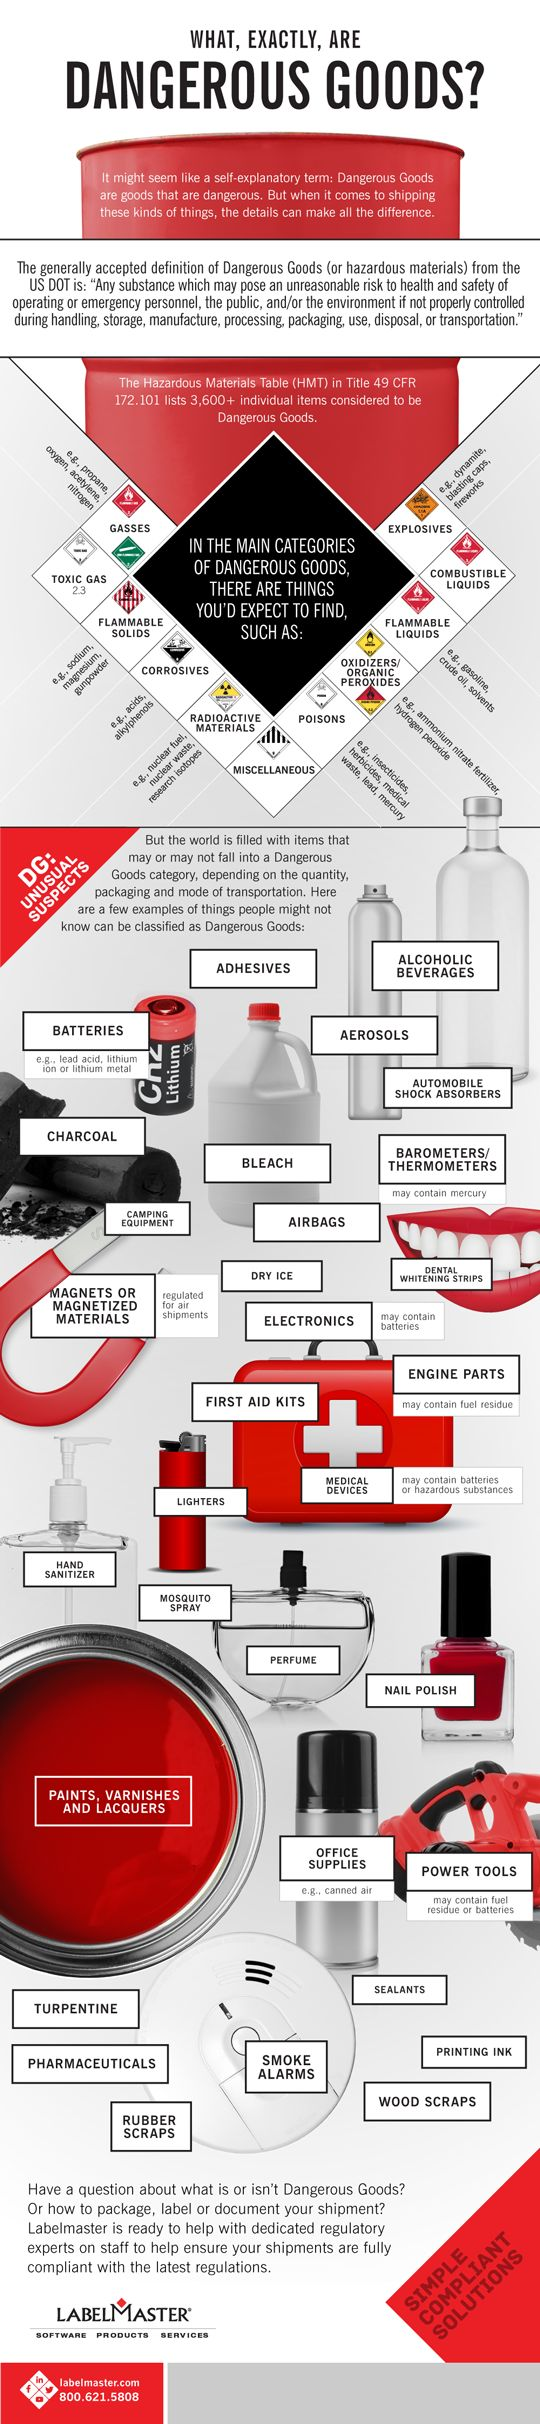 Beyond explosives, corrosives and other flammable or radioactive materials, the #DangerousGoods classification encompasses a surprising array of everyday items. This infographic takes a look at some of the things people might be surprised to learn are regulated when it comes to shipping. #hazmat blog.labelmaster.com